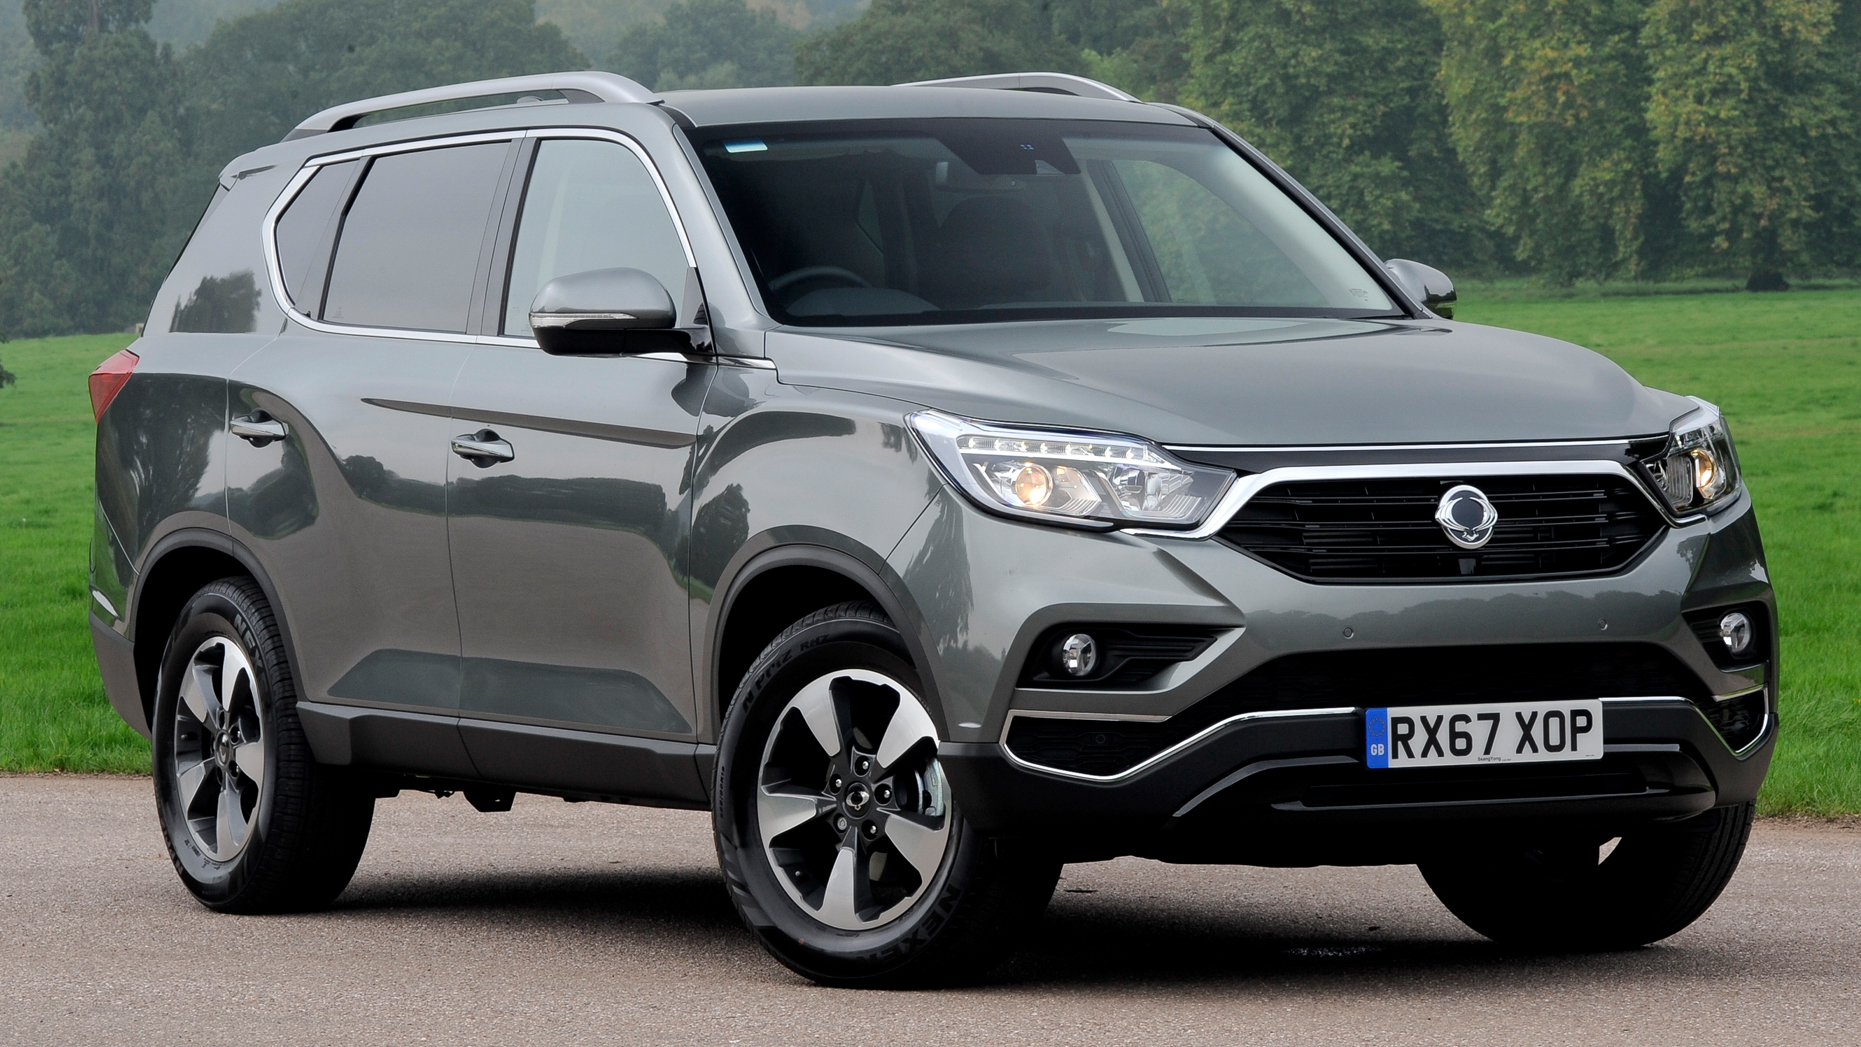 2018 Ssangyong Rexton More Pictures Revealed